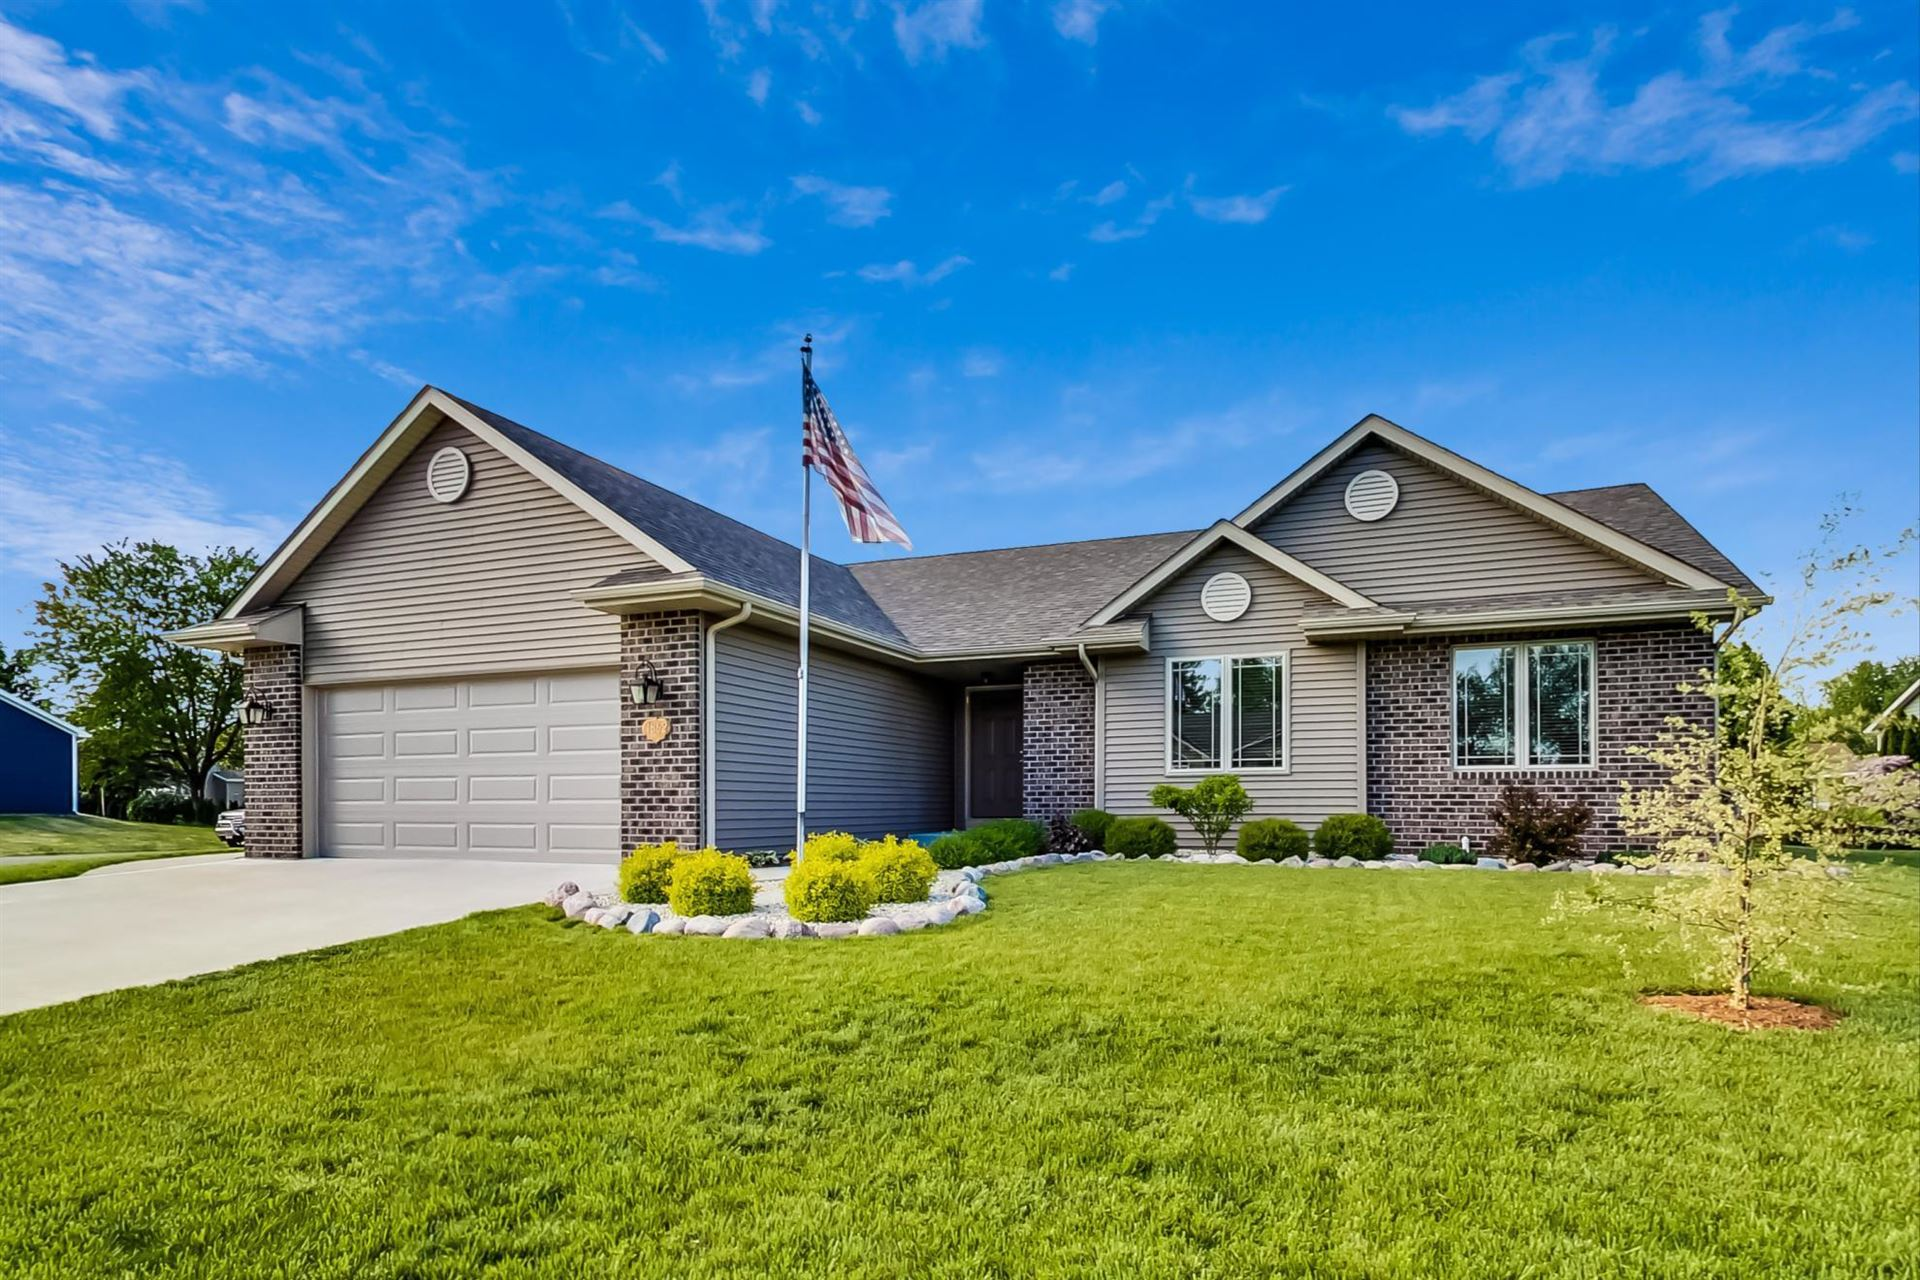 1862 Swallow Rd, Twin Lakes, WI 53181 - #: 1691986